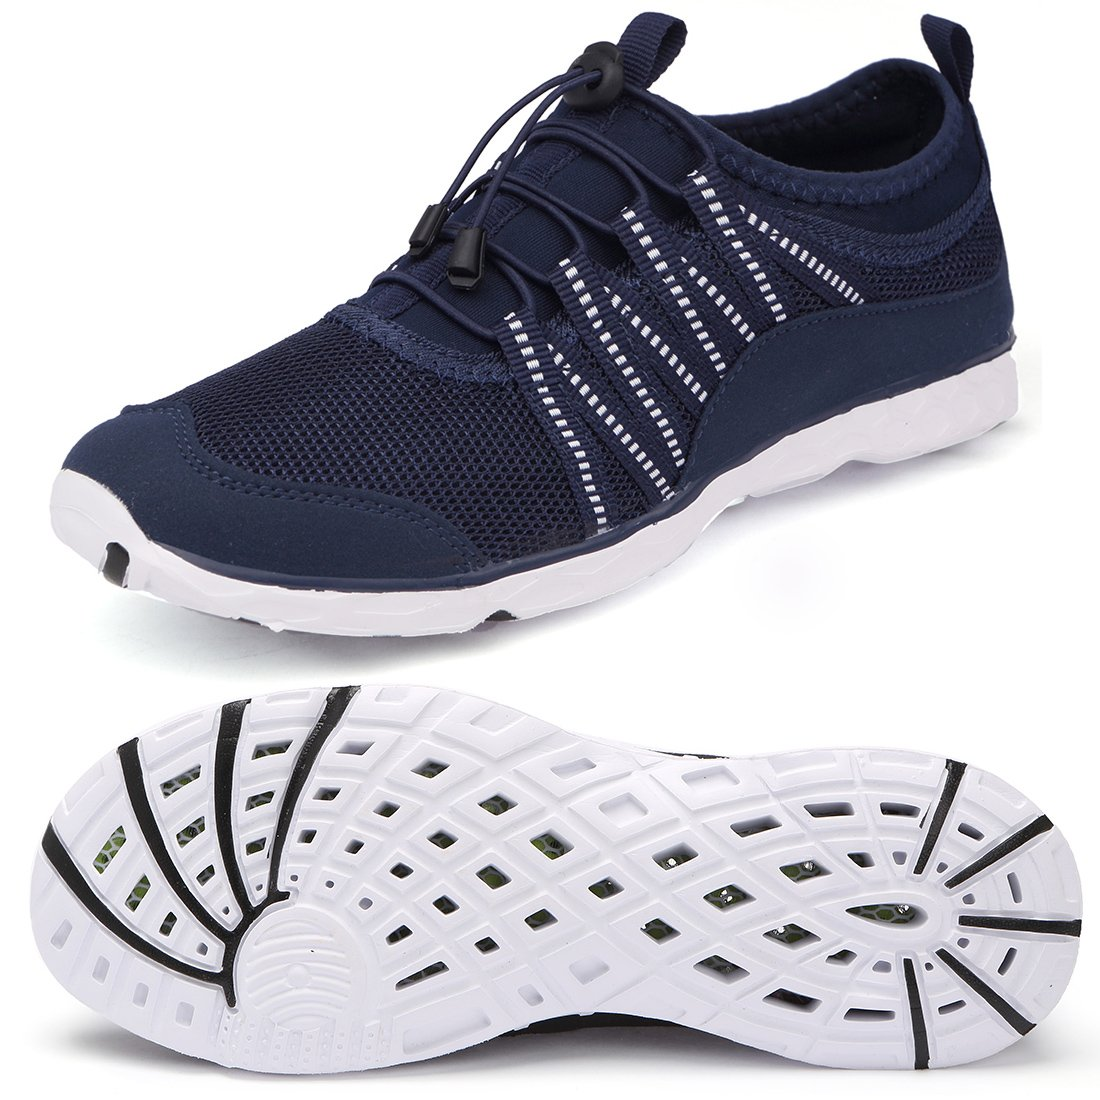 Quick-Drying Water Barefoot Shoes Aqua Shoes Aqua Yoga Socks for Men Water Sports Beach Navy/White 41 EU